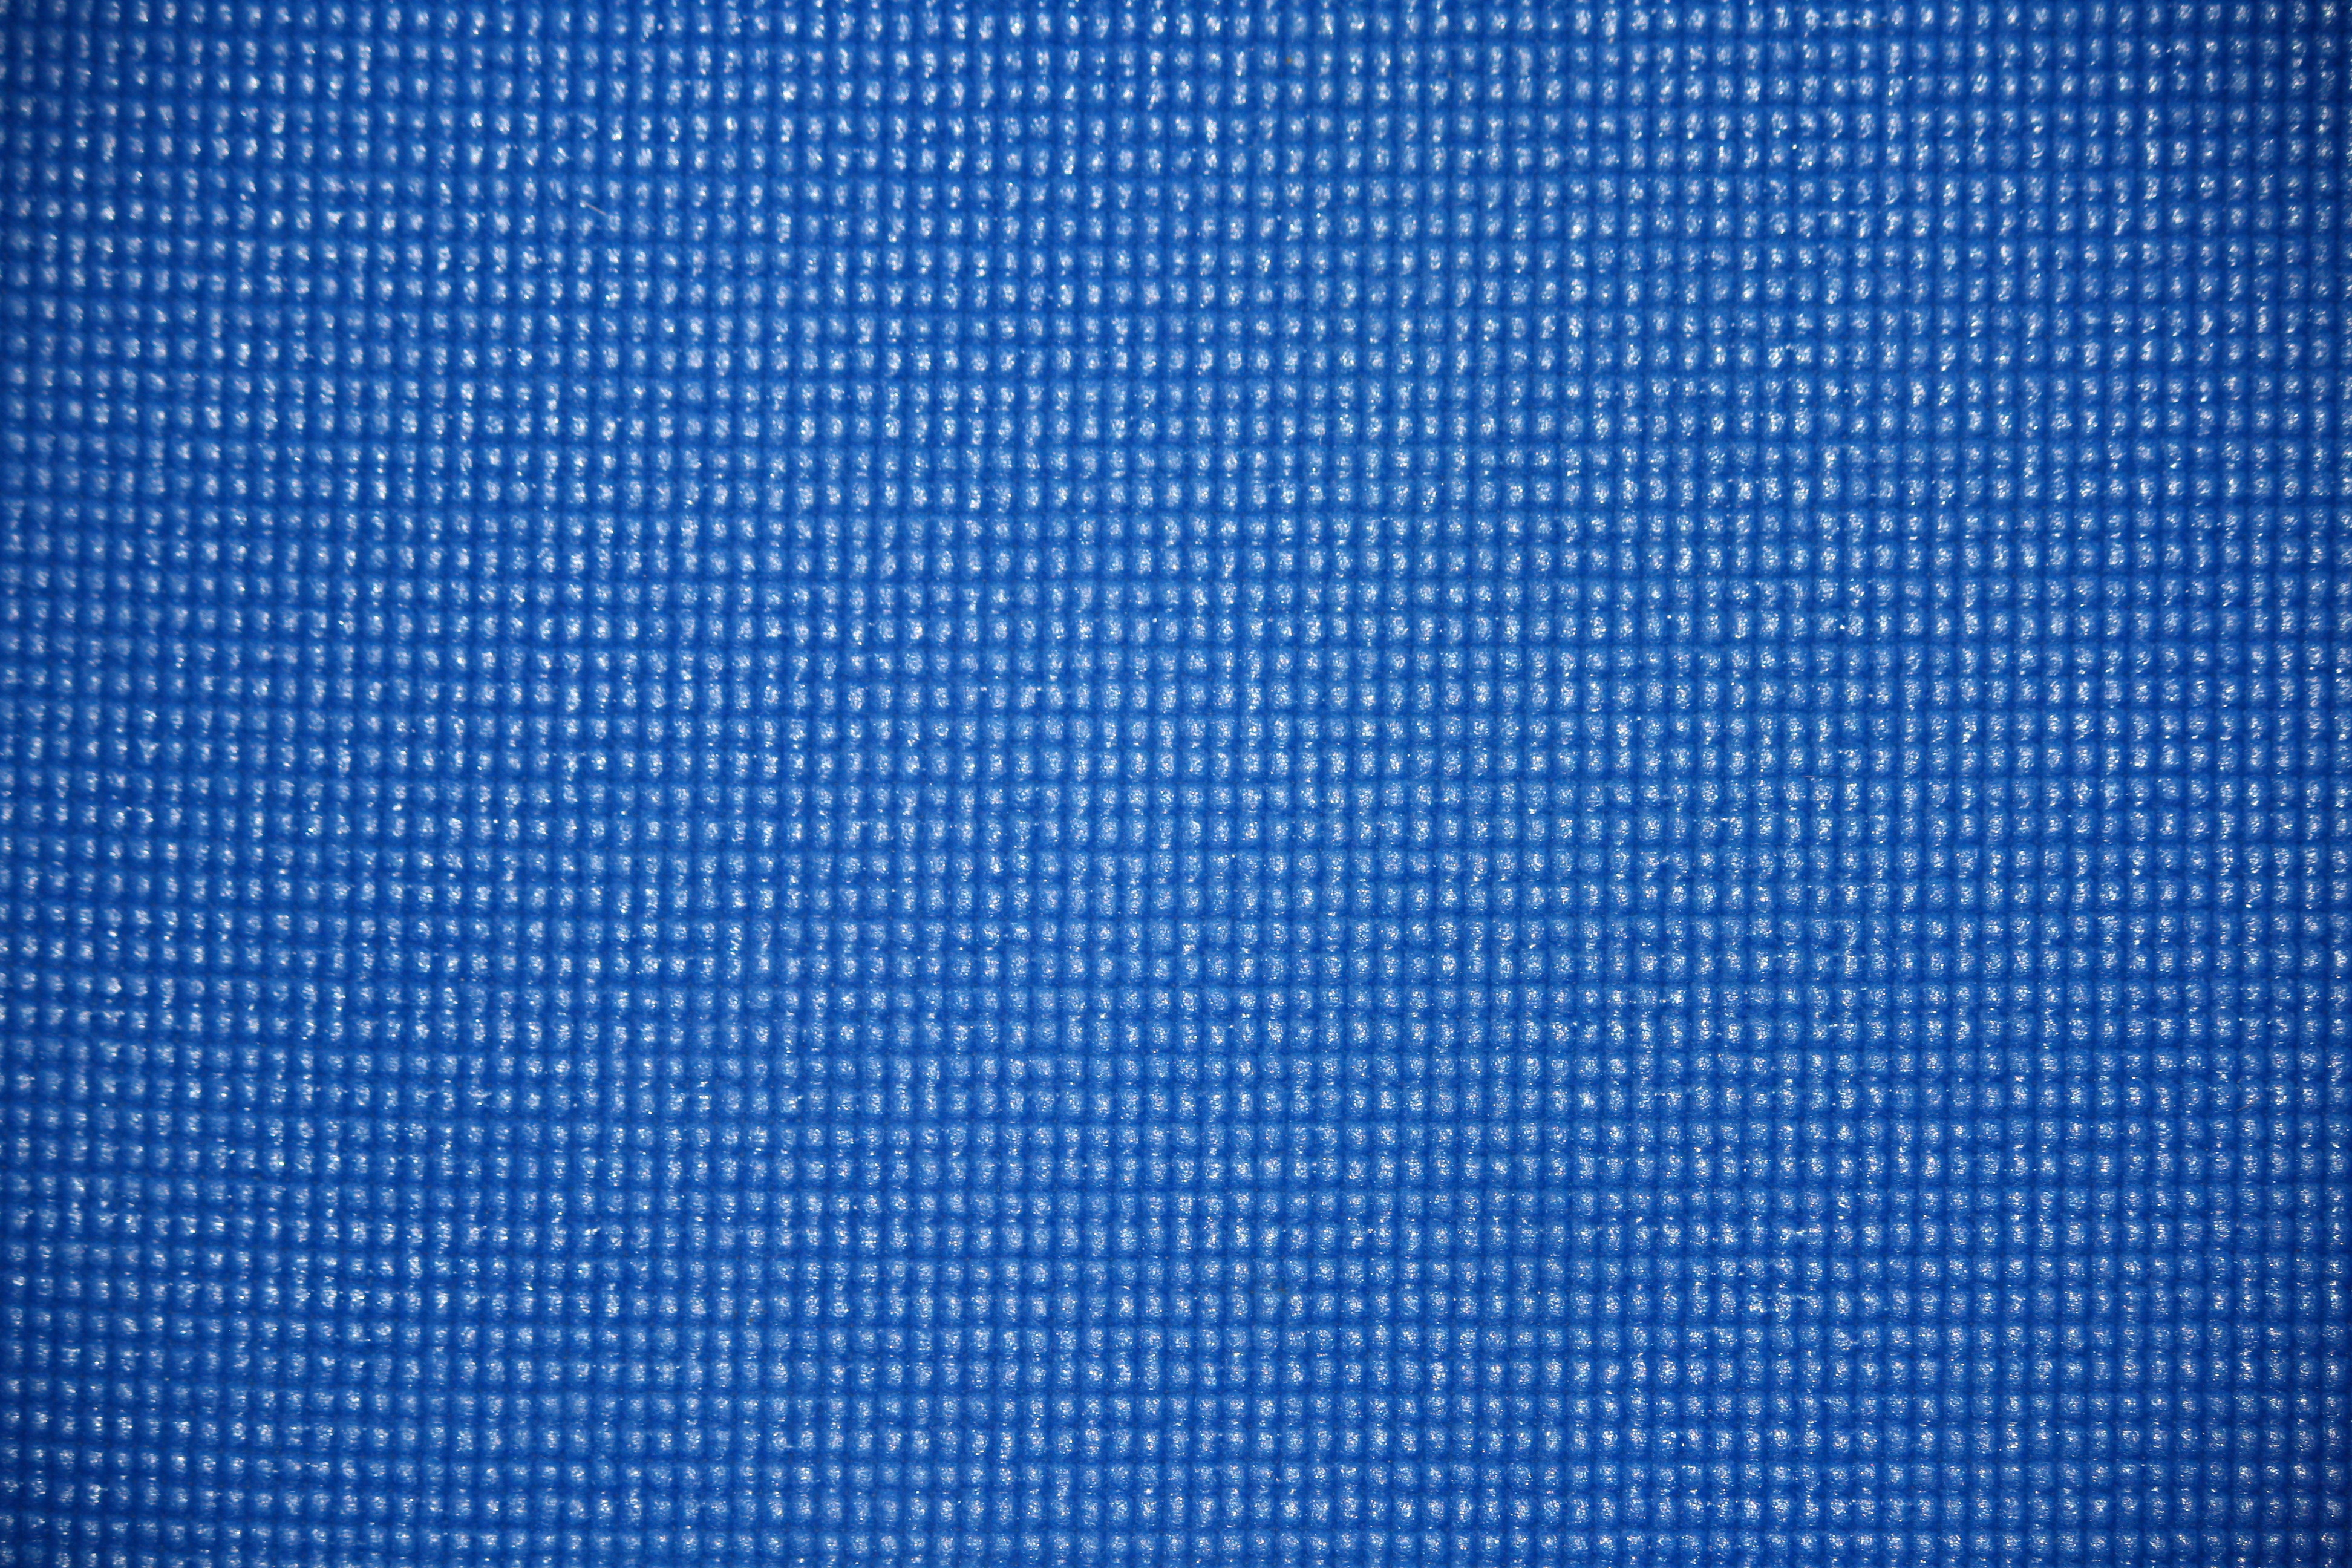 Blue Yoga Exercise Mat Texture Picture Free Photograph